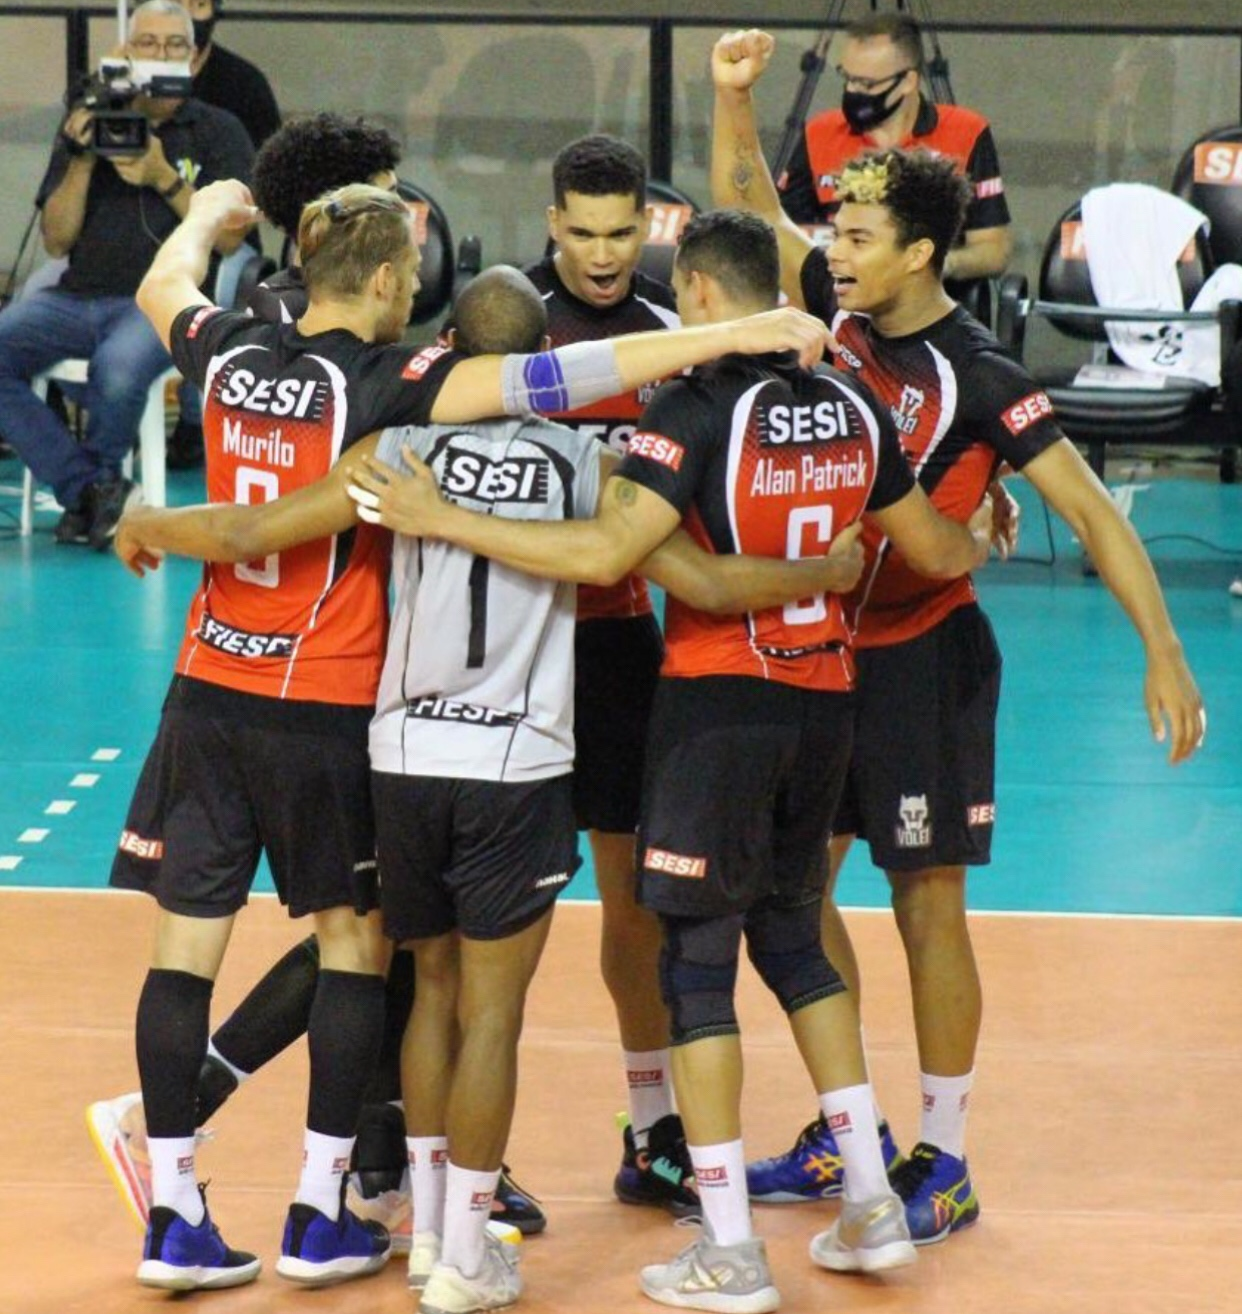 Brazil: Ribeirao-Sesi 3-2 in recovery match of Round 20. Salvation postponed for the guests